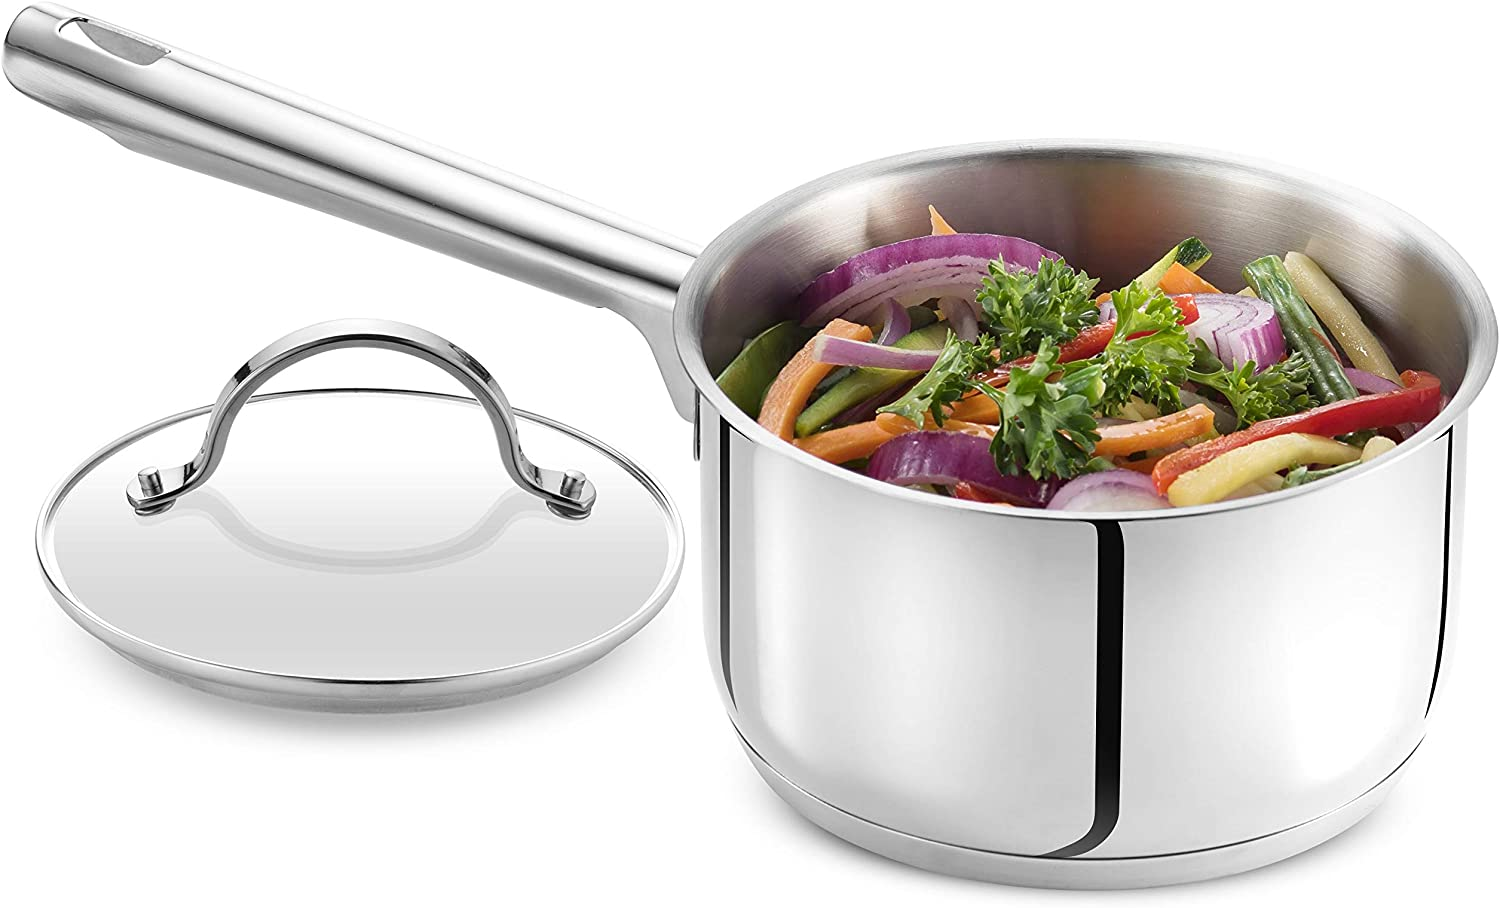 GOURMEX Tango Induction Saucepan | Stainless Steel Pot With Glass Cookware Lid | Interior Measurement Markings | Compatible with All Heat Sources | Dishwasher Oven Safe (1.8L)